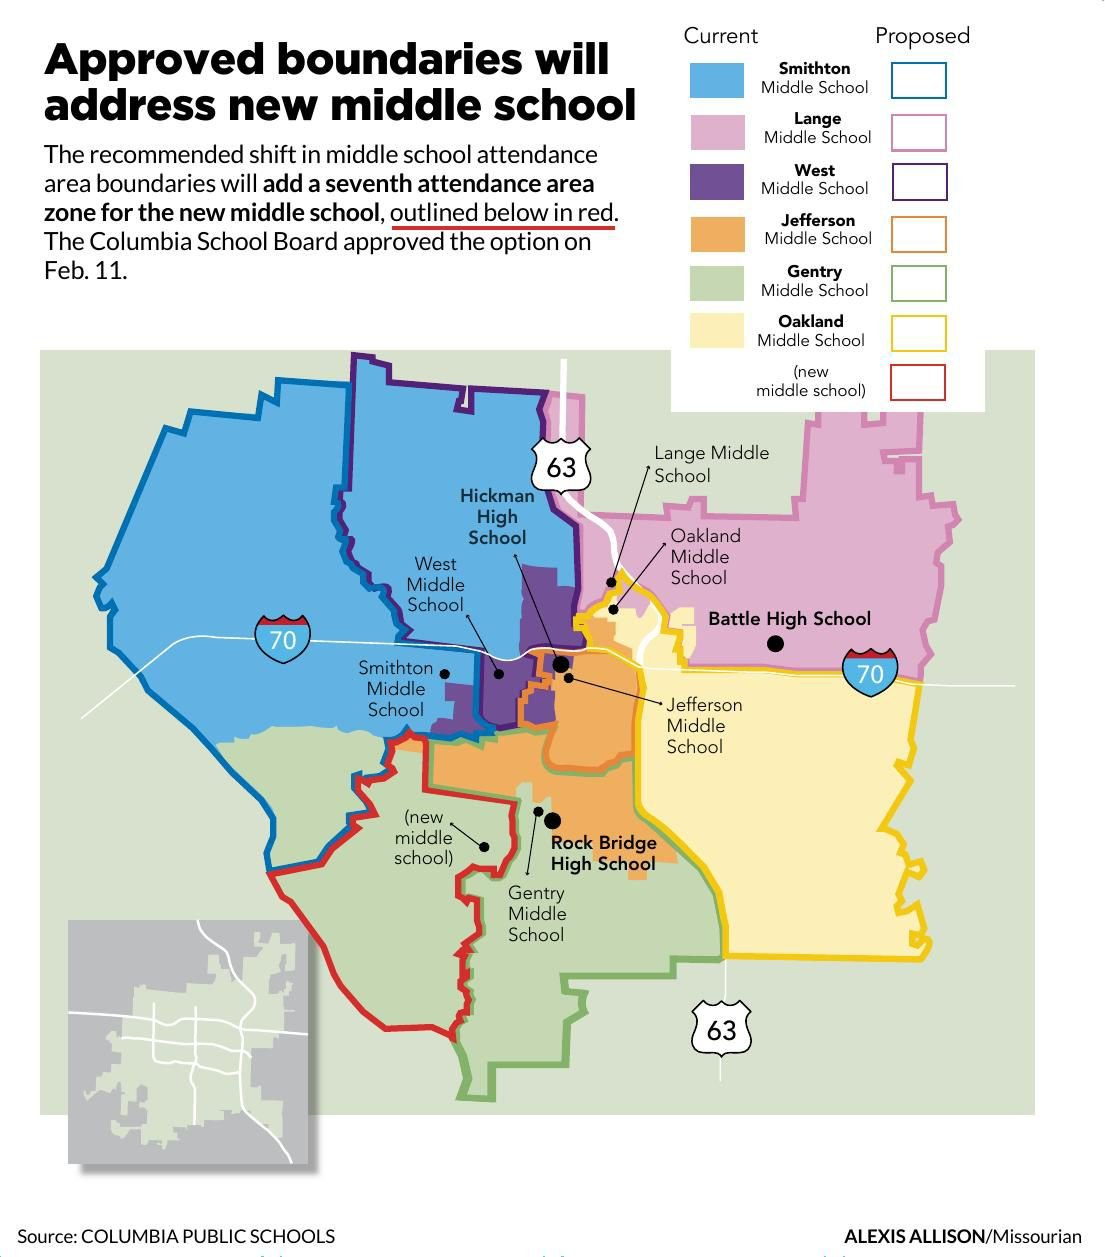 Approved boundaries will address new middle school